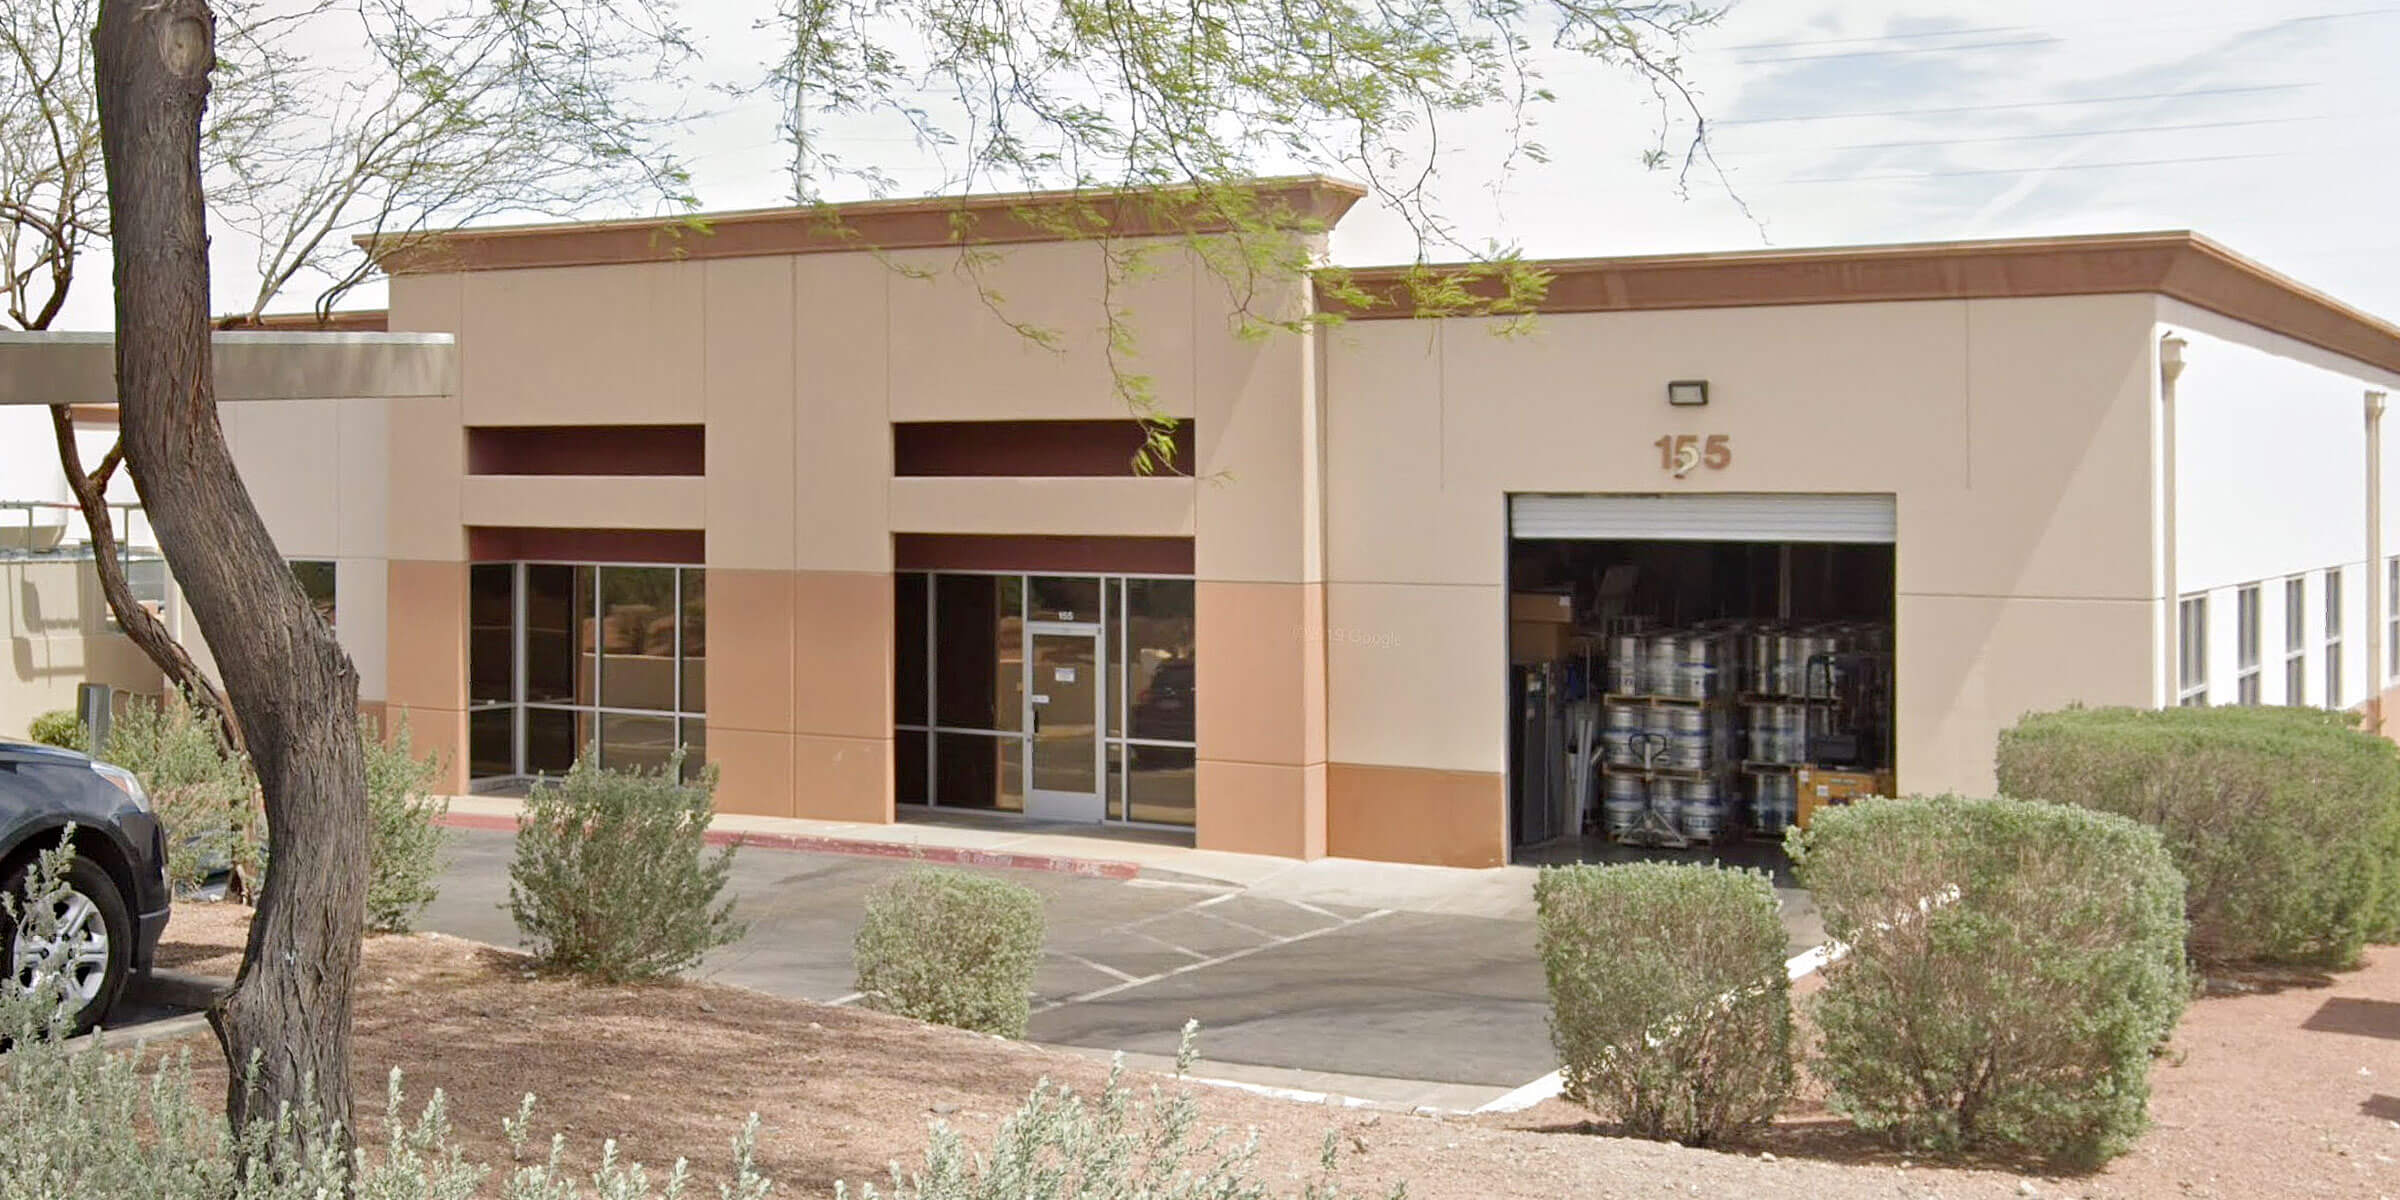 Outside the production facility at Joseph James Brewing Co. in Henderson, Nevada